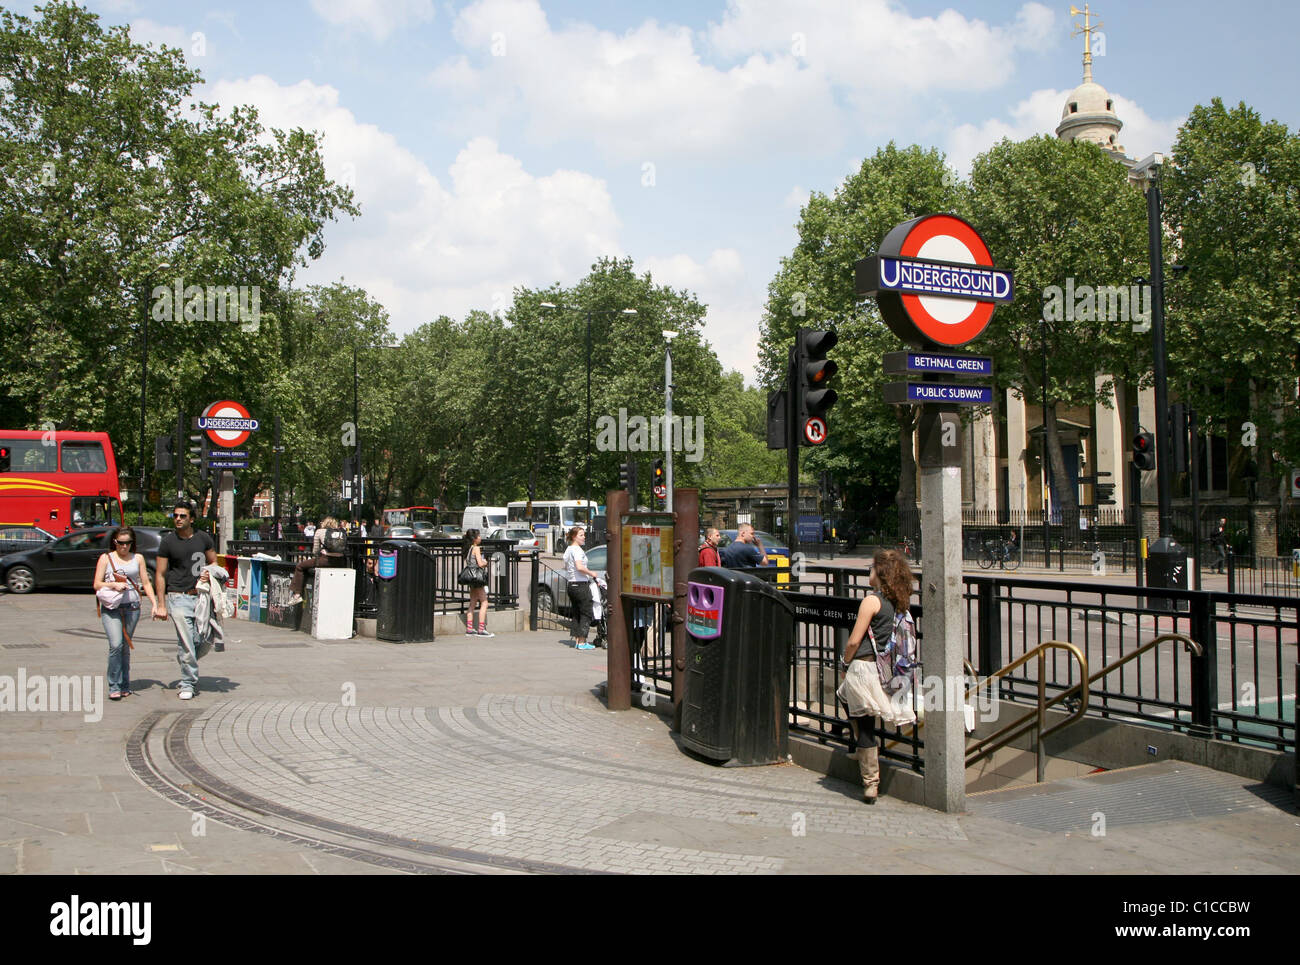 General View GV of Bethnal Green underground station in London, England. - Stock Image